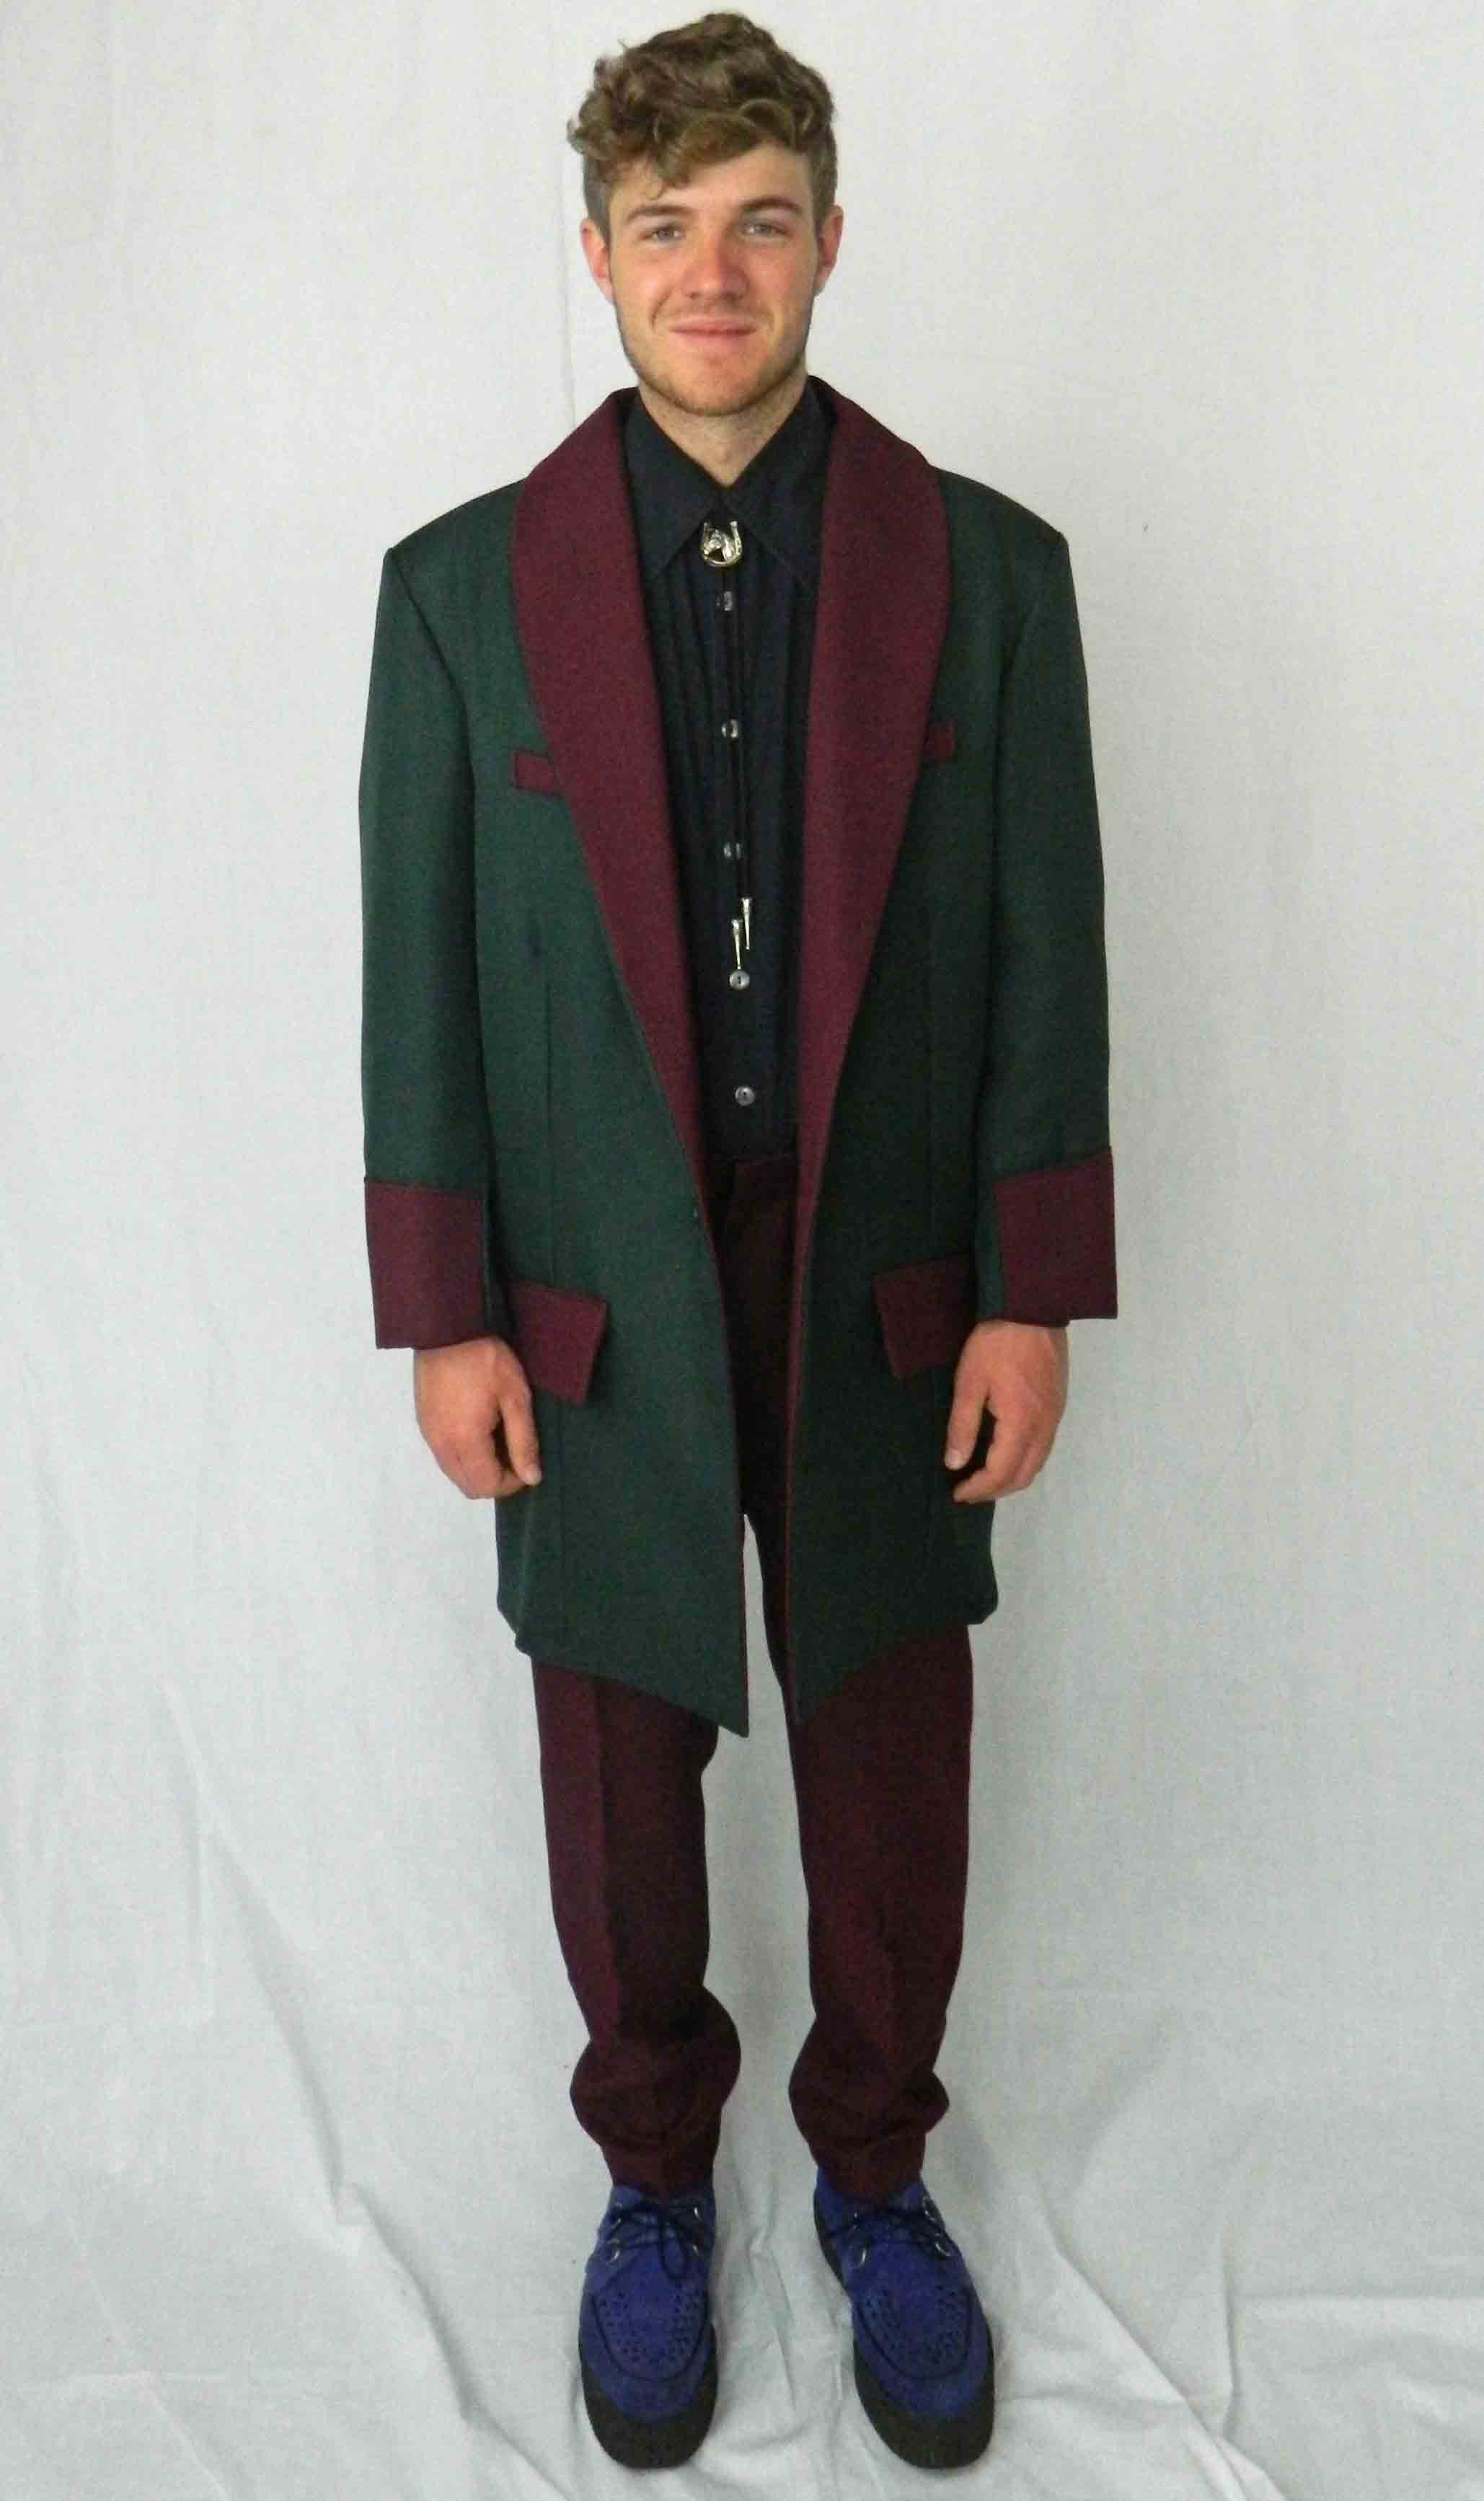 Teddy Boy Deluxe Green & Burgundy